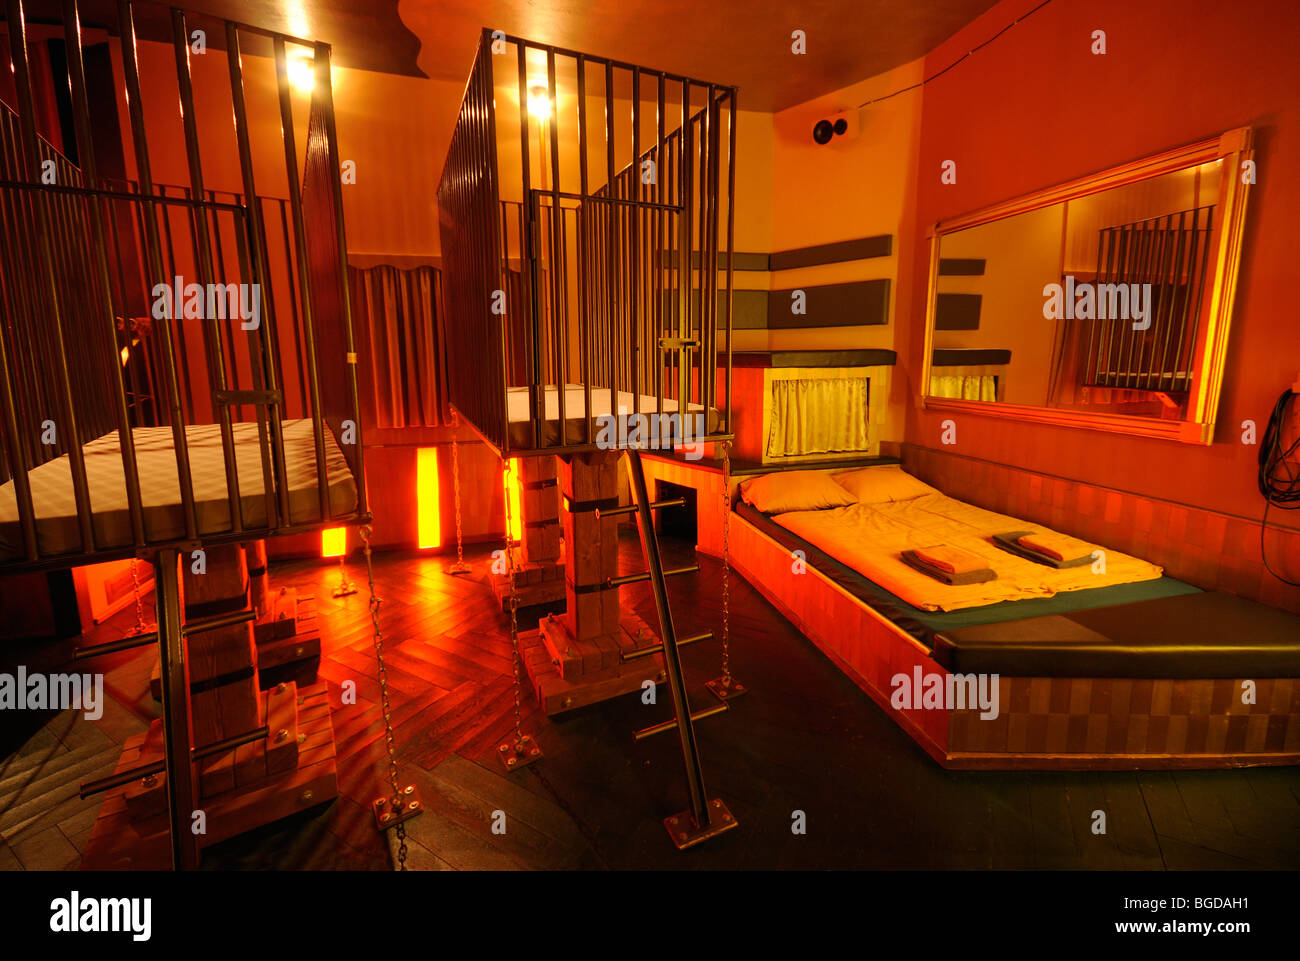 propeller island city lodge hotel in albrecht achilles strasse near stock photo 27338557 alamy. Black Bedroom Furniture Sets. Home Design Ideas